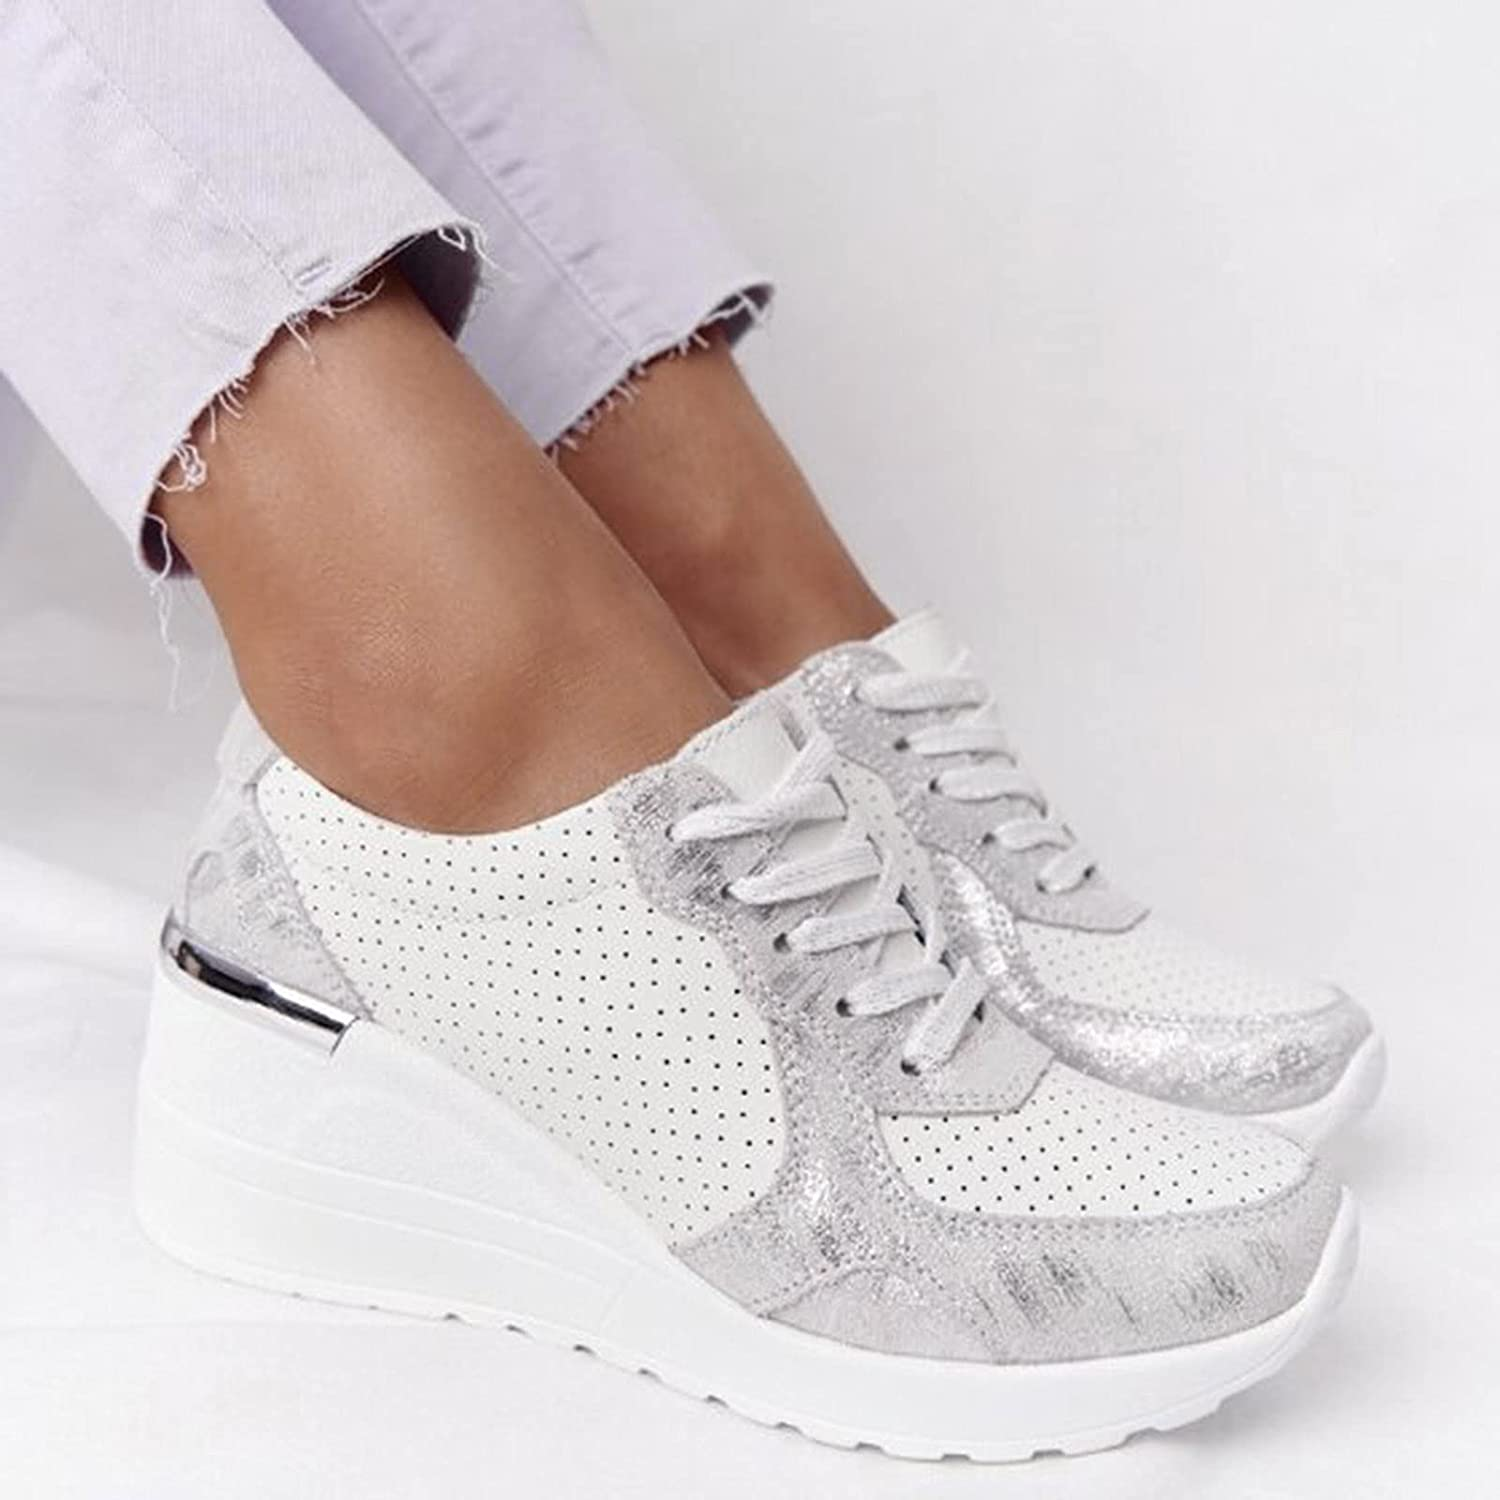 Niceast Women's Sneakers Comforatable Wedge Platform Walking Shoes for Women Fashion Lace Up Breathable Running Shoes